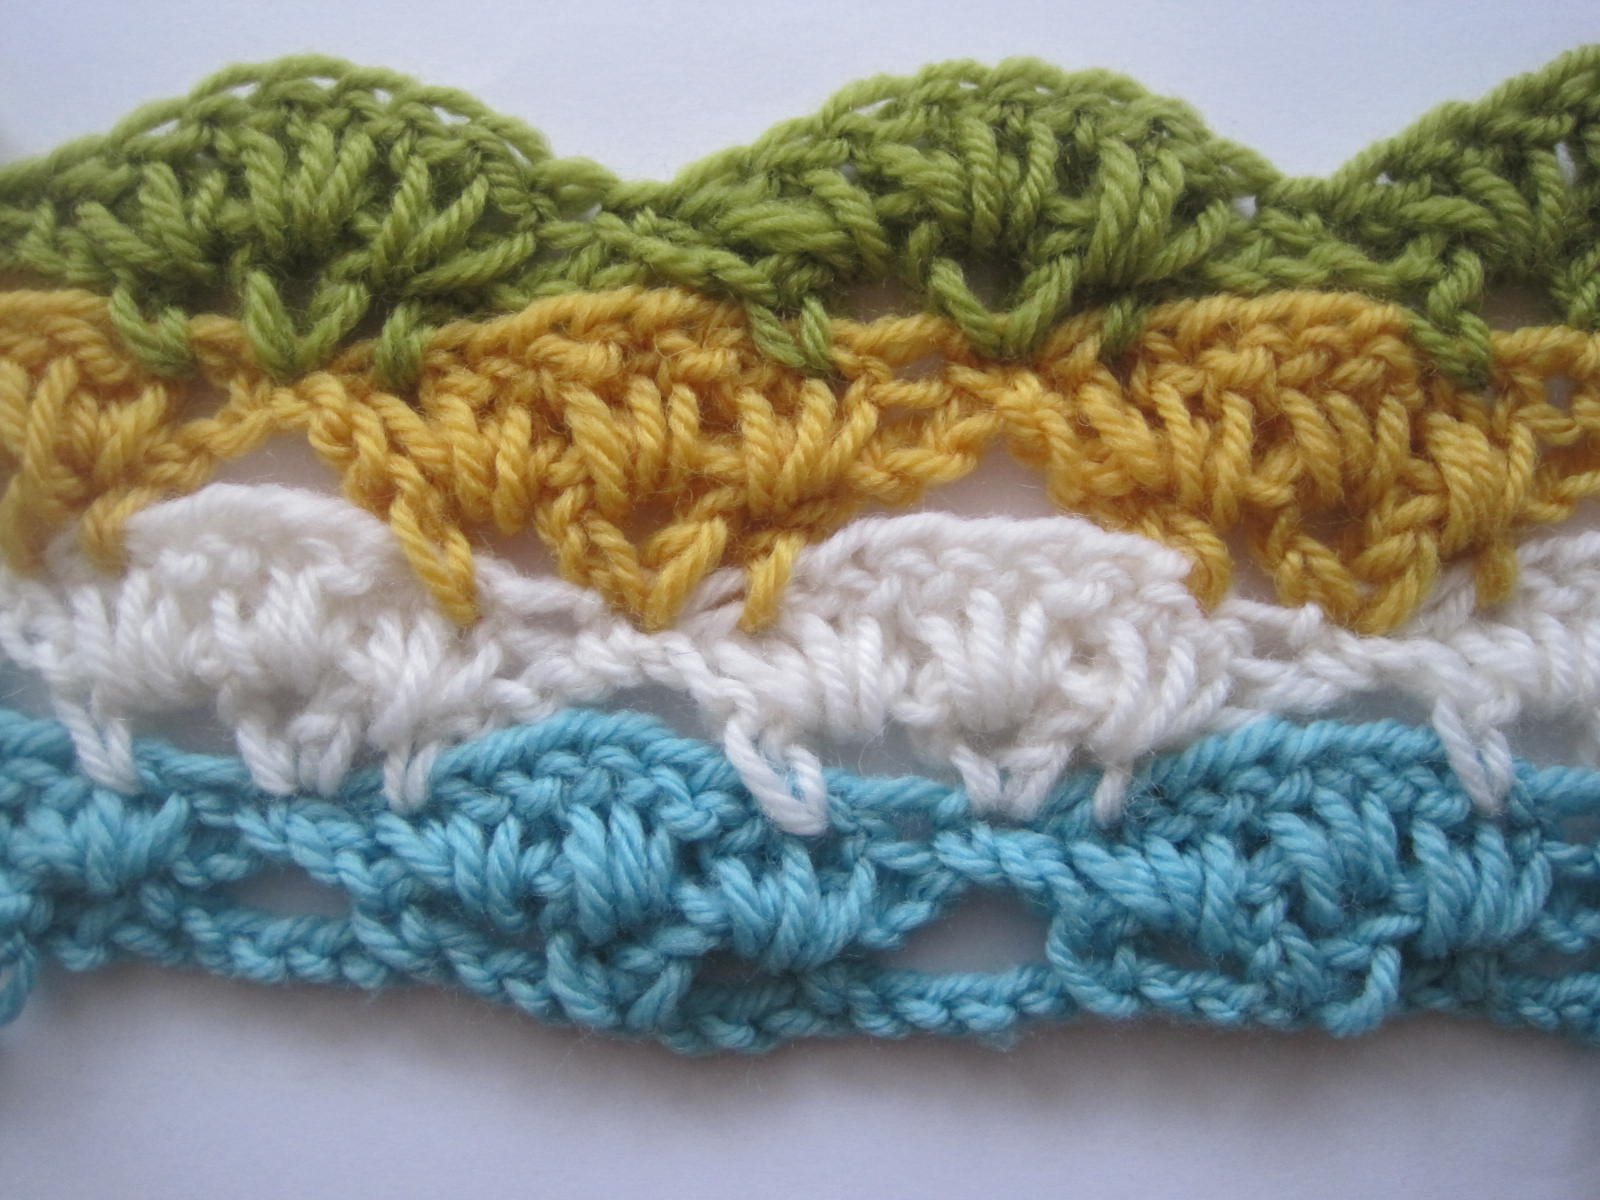 Pics Photos - How To Crochet Multi Colored Stitches Part 2